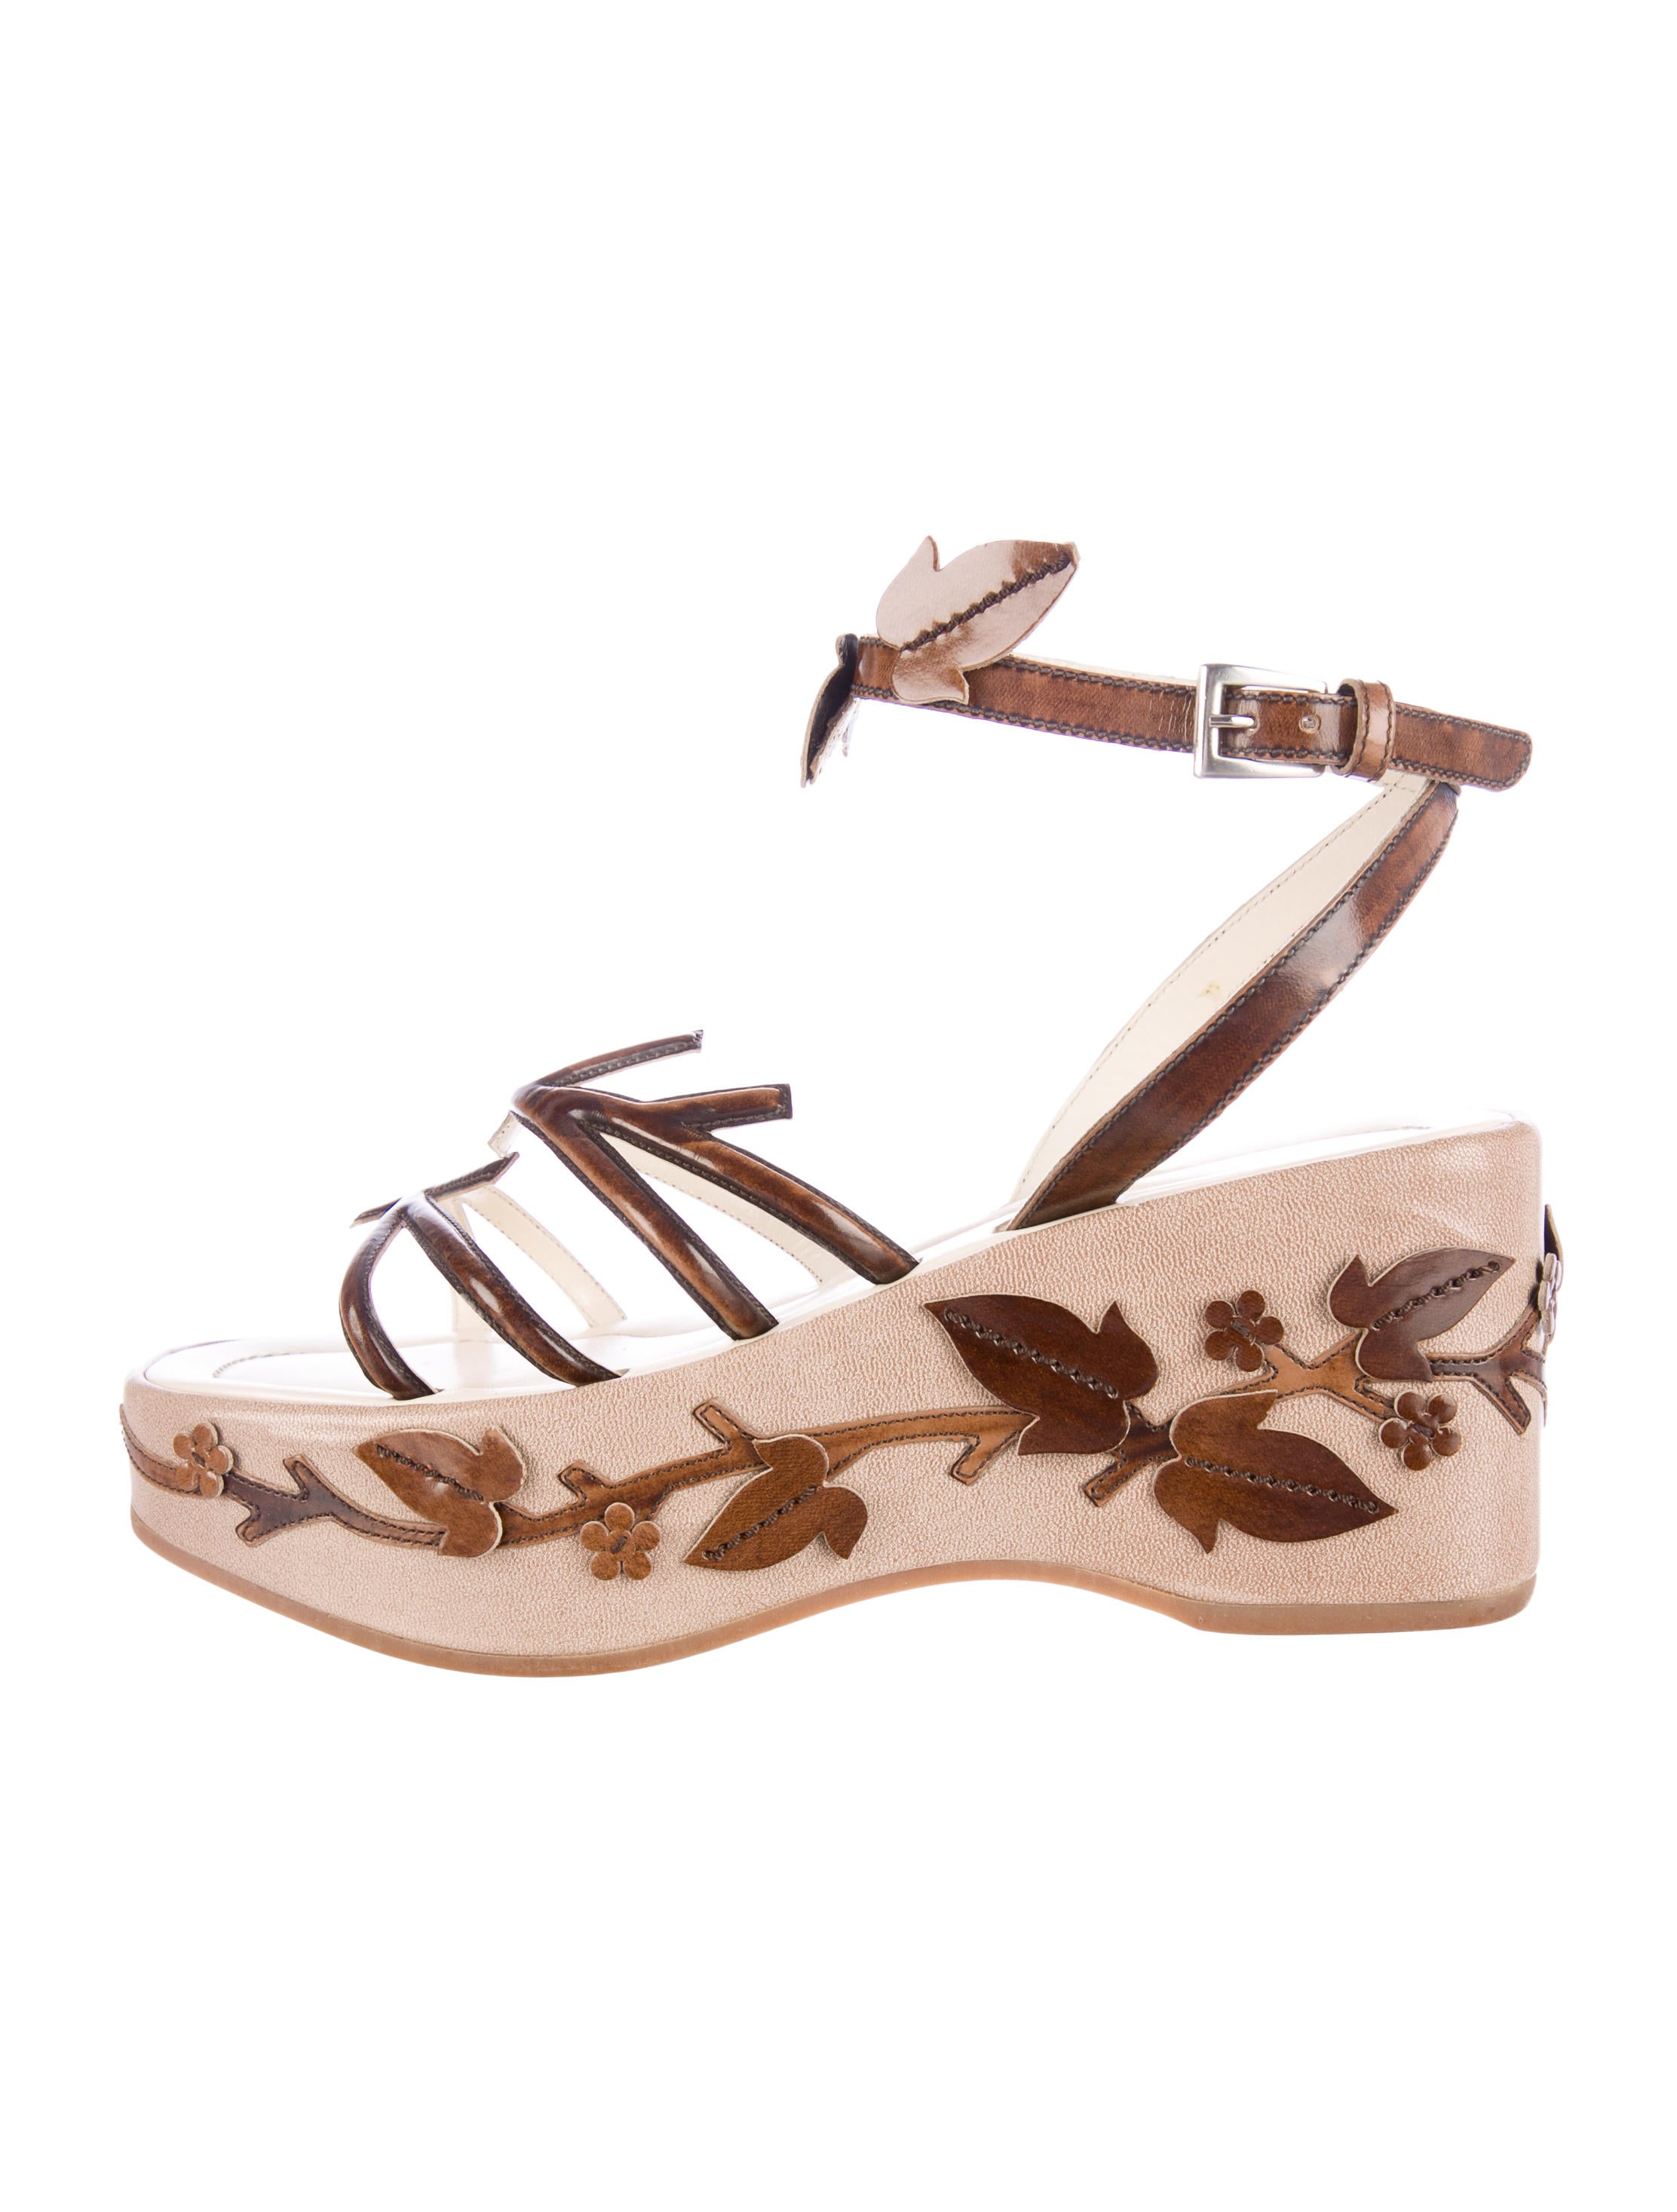 outlet 2014 unisex free shipping best sale Prada Floral Platform Sandals buy cheap wholesale price store cheap price cFM7W